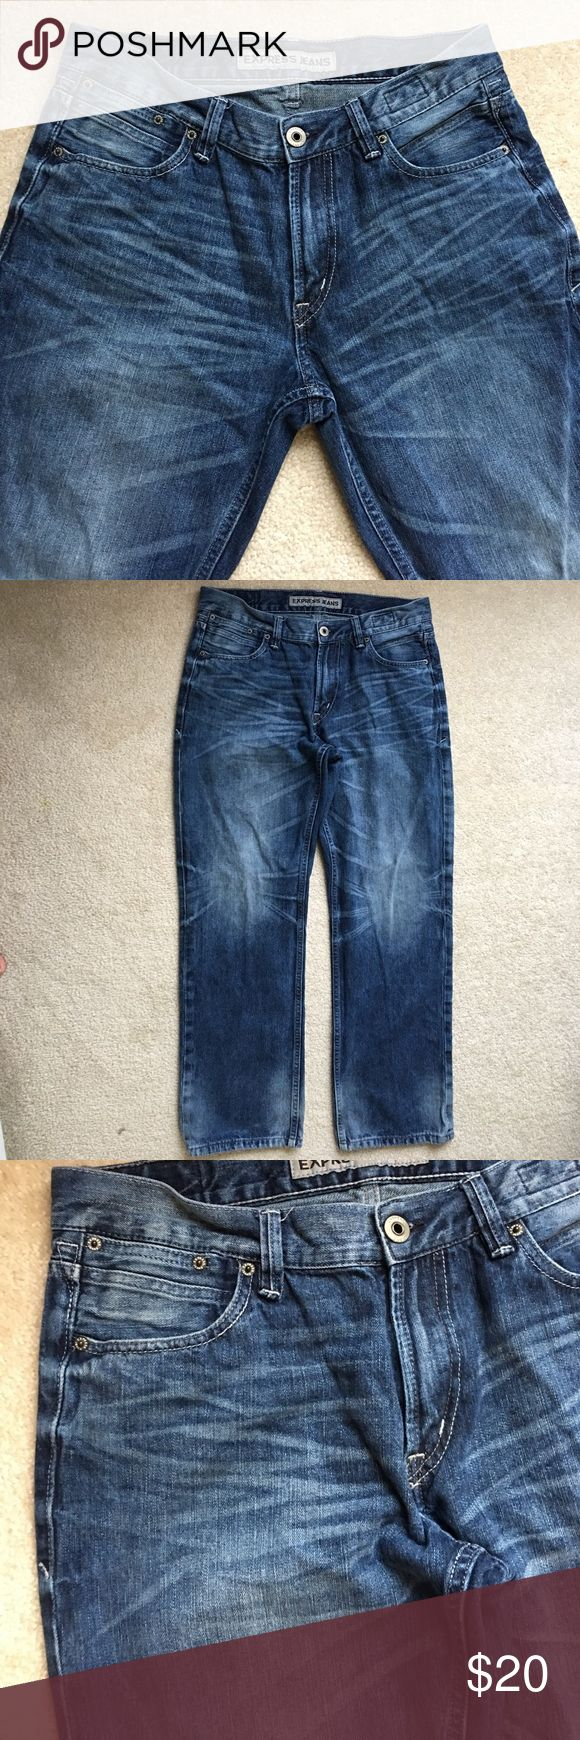 Express men's jeans size 32/30 Very good condition 9/10, no tear no hole Express Jeans Straight